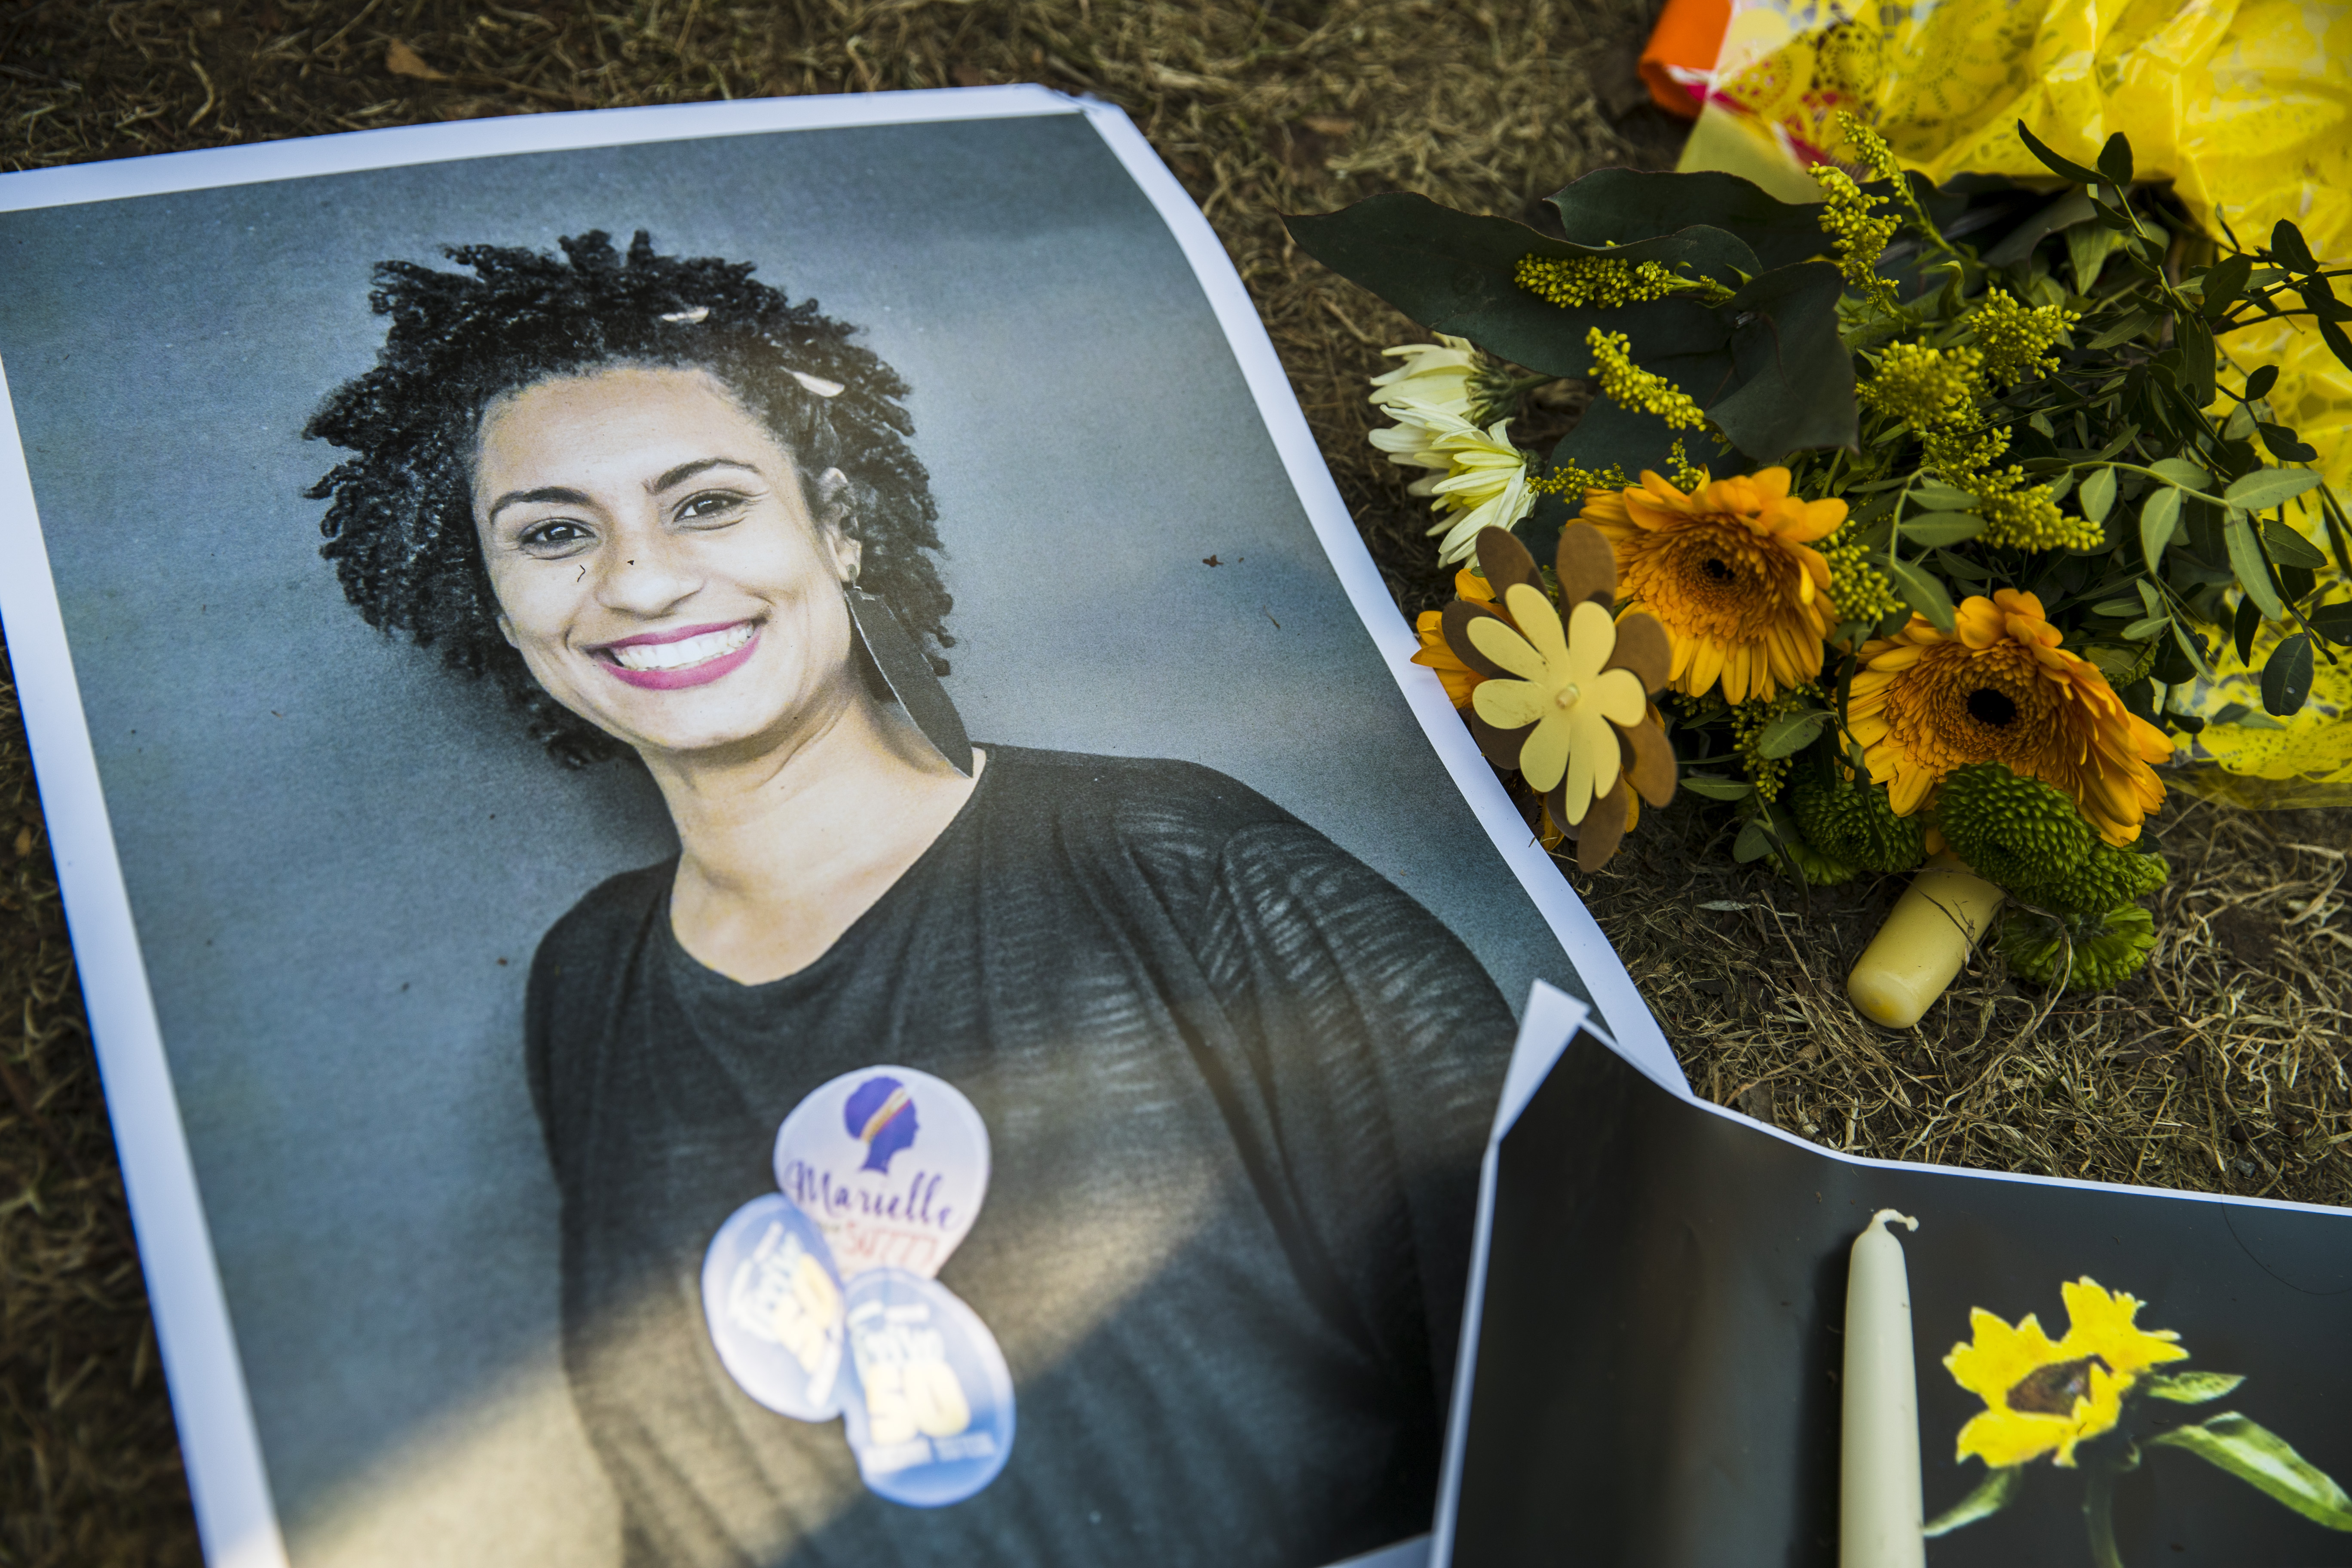 A makeshift memorial is pictured during a protest of Brazilian expats against the killing of Rio de Janeiro's left councilwoman and activist Marielle Franco in Berlin, Germany on March 18, 2018.